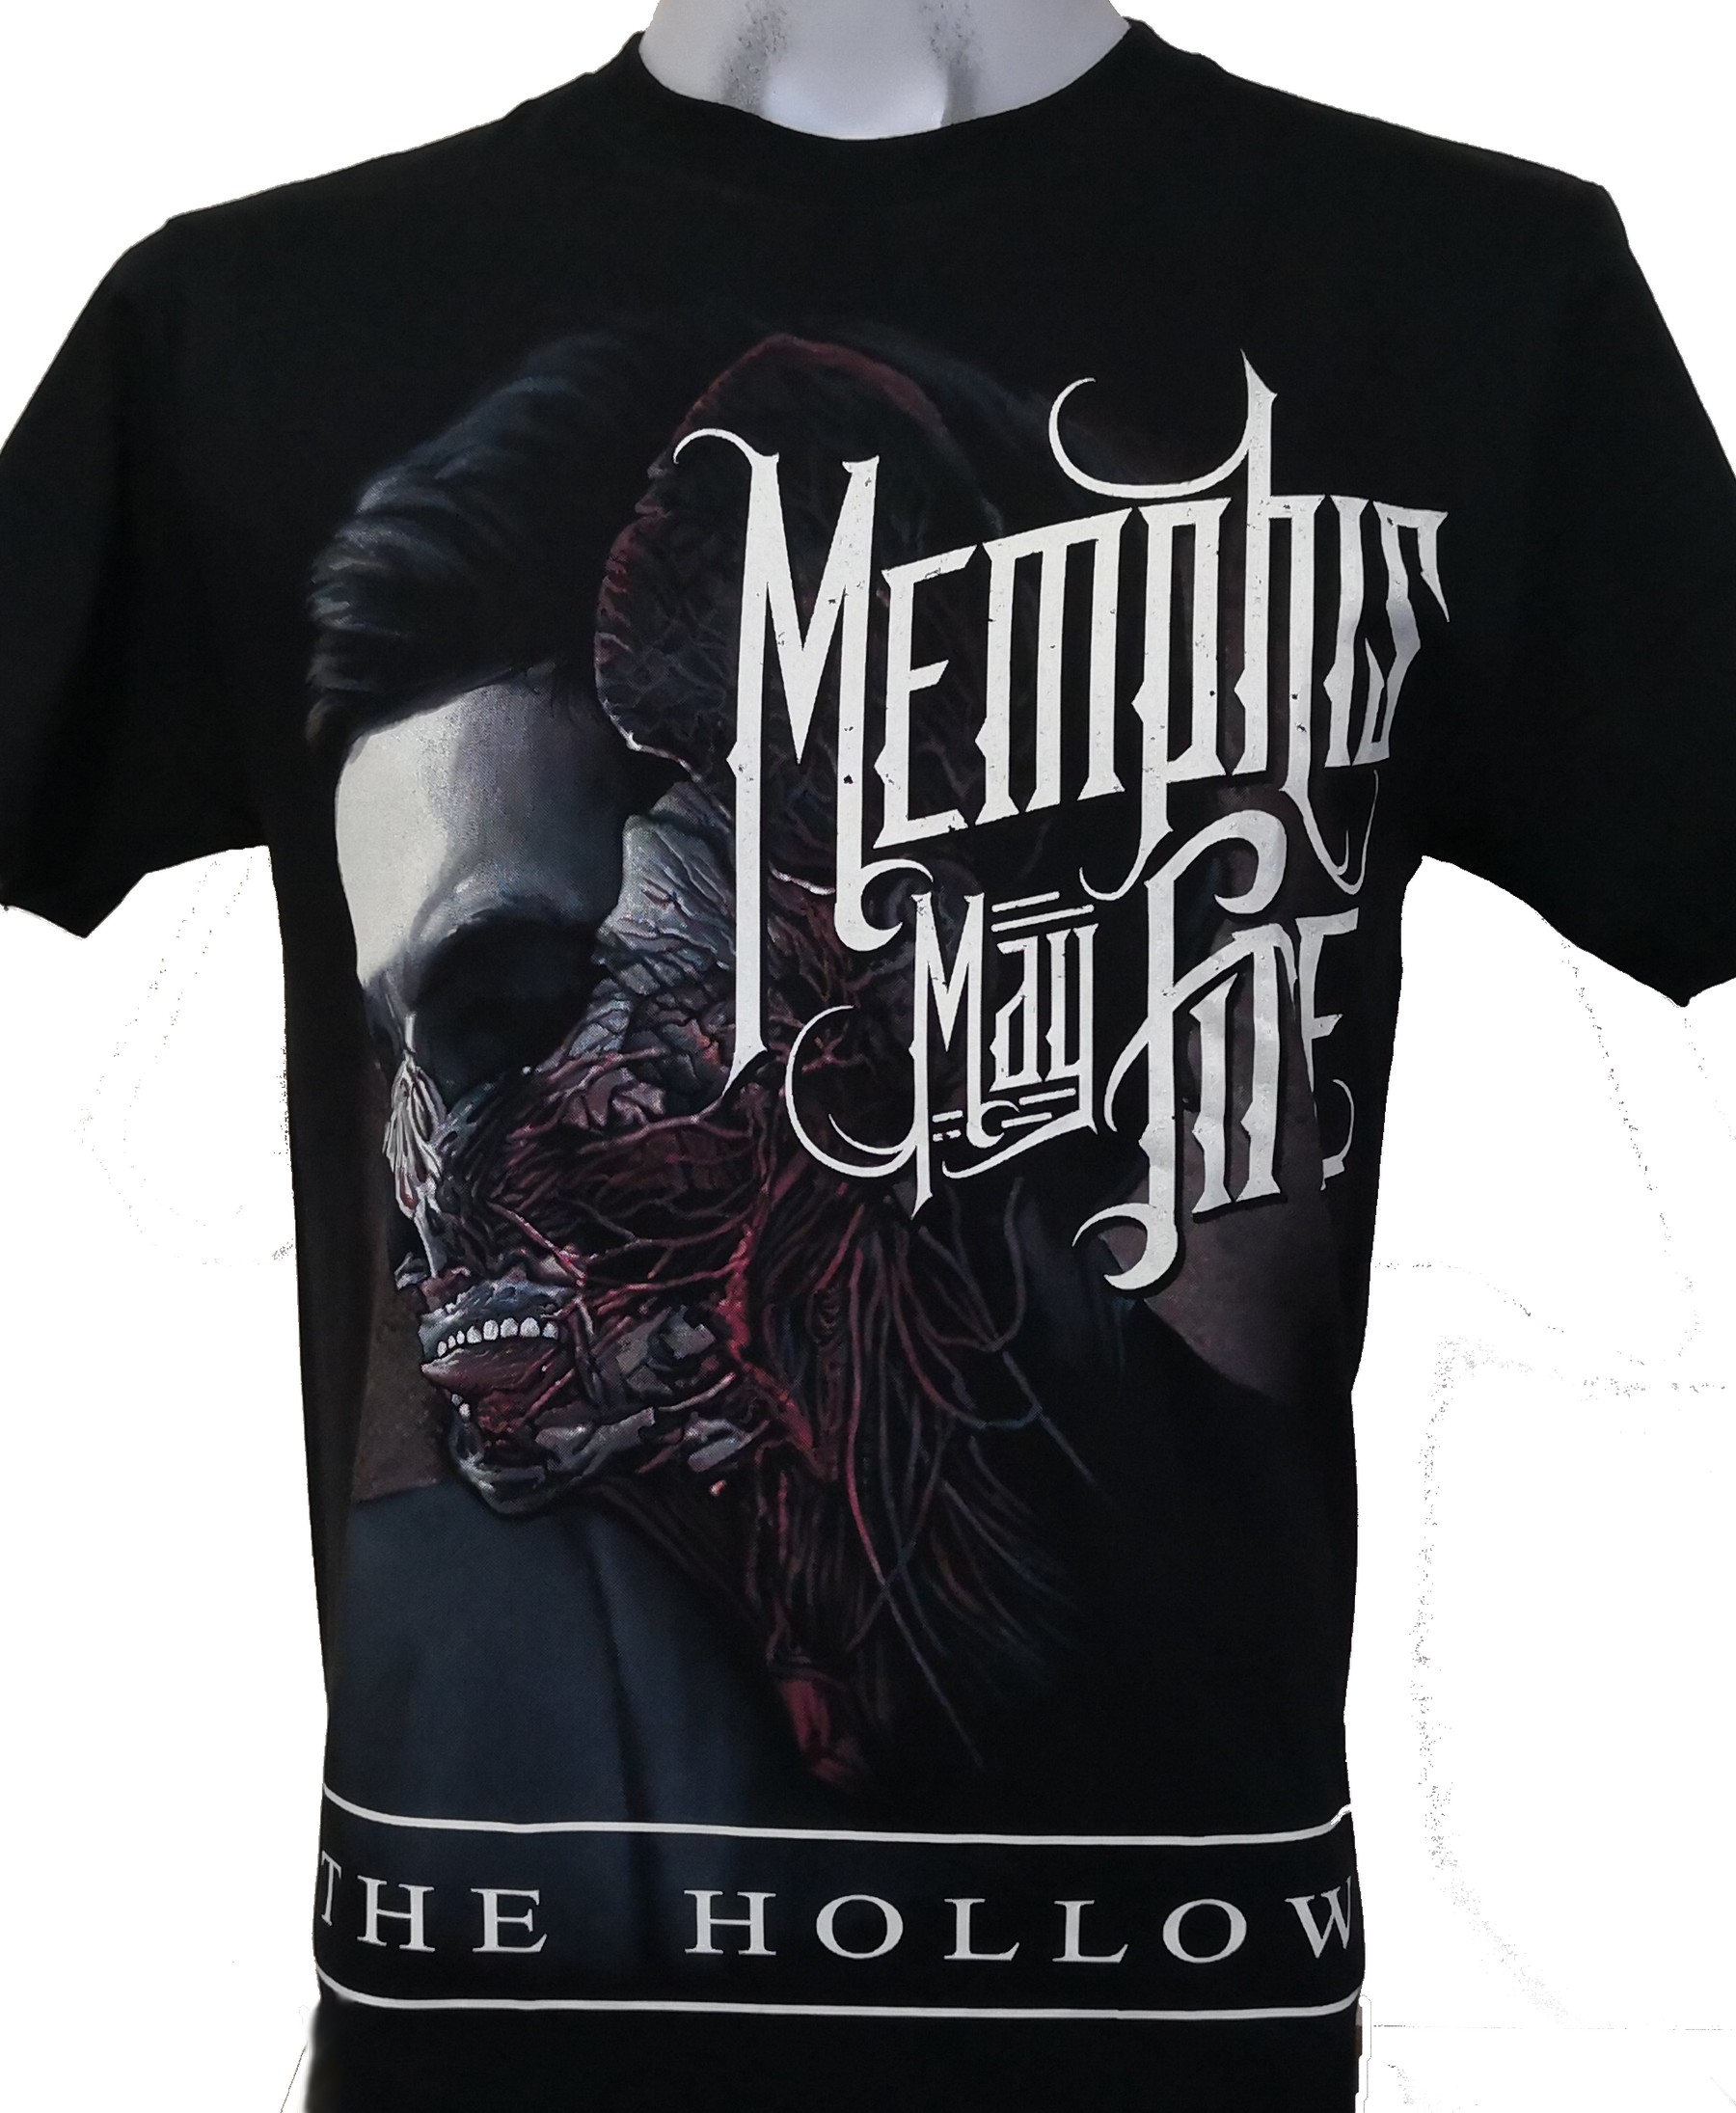 a5cfe9ff Memphis May Fire t-shirt The Hollow size M – RoxxBKK